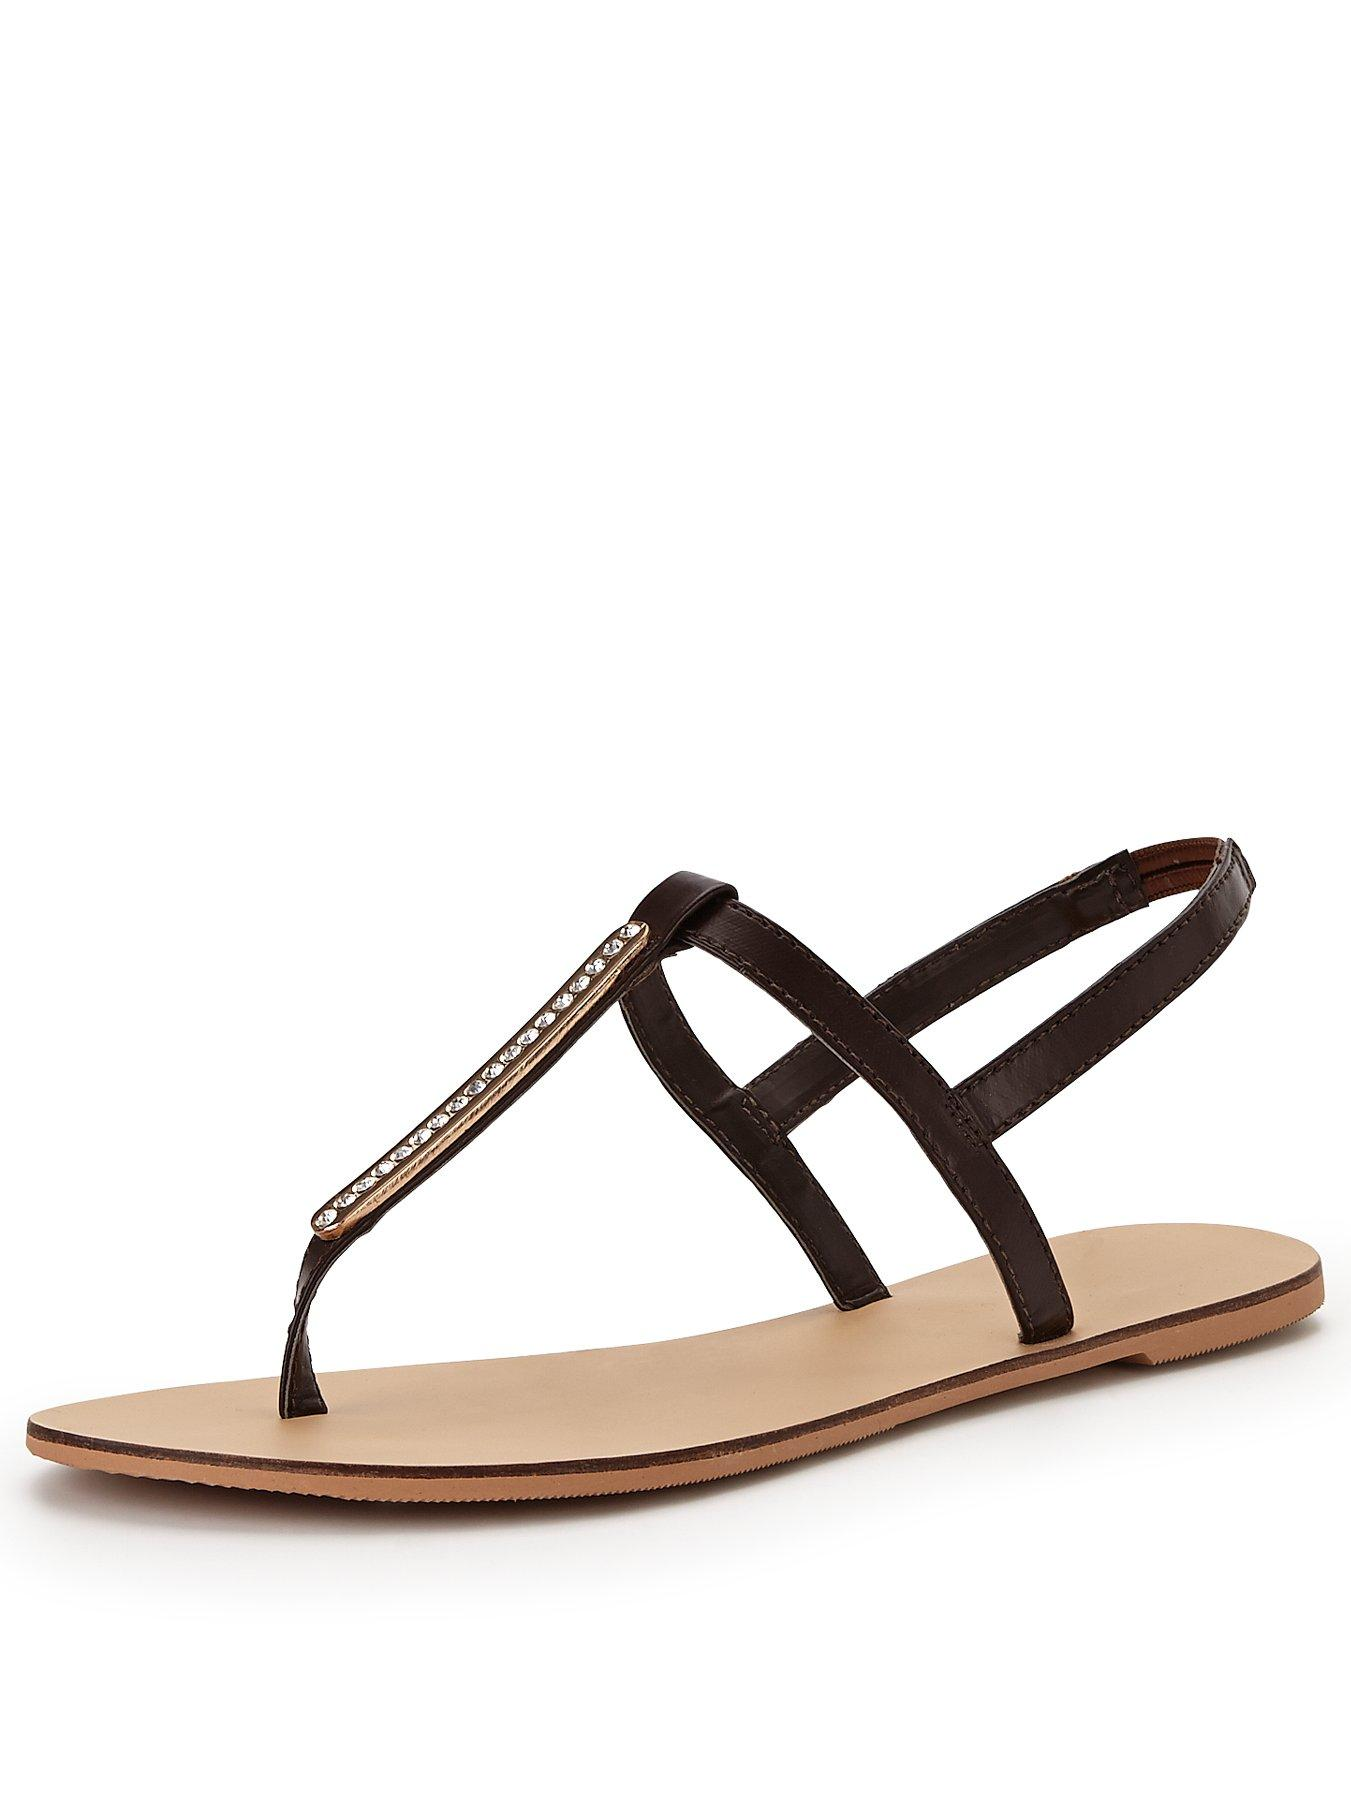 Shoe Box Diamante Toe Post Sandal